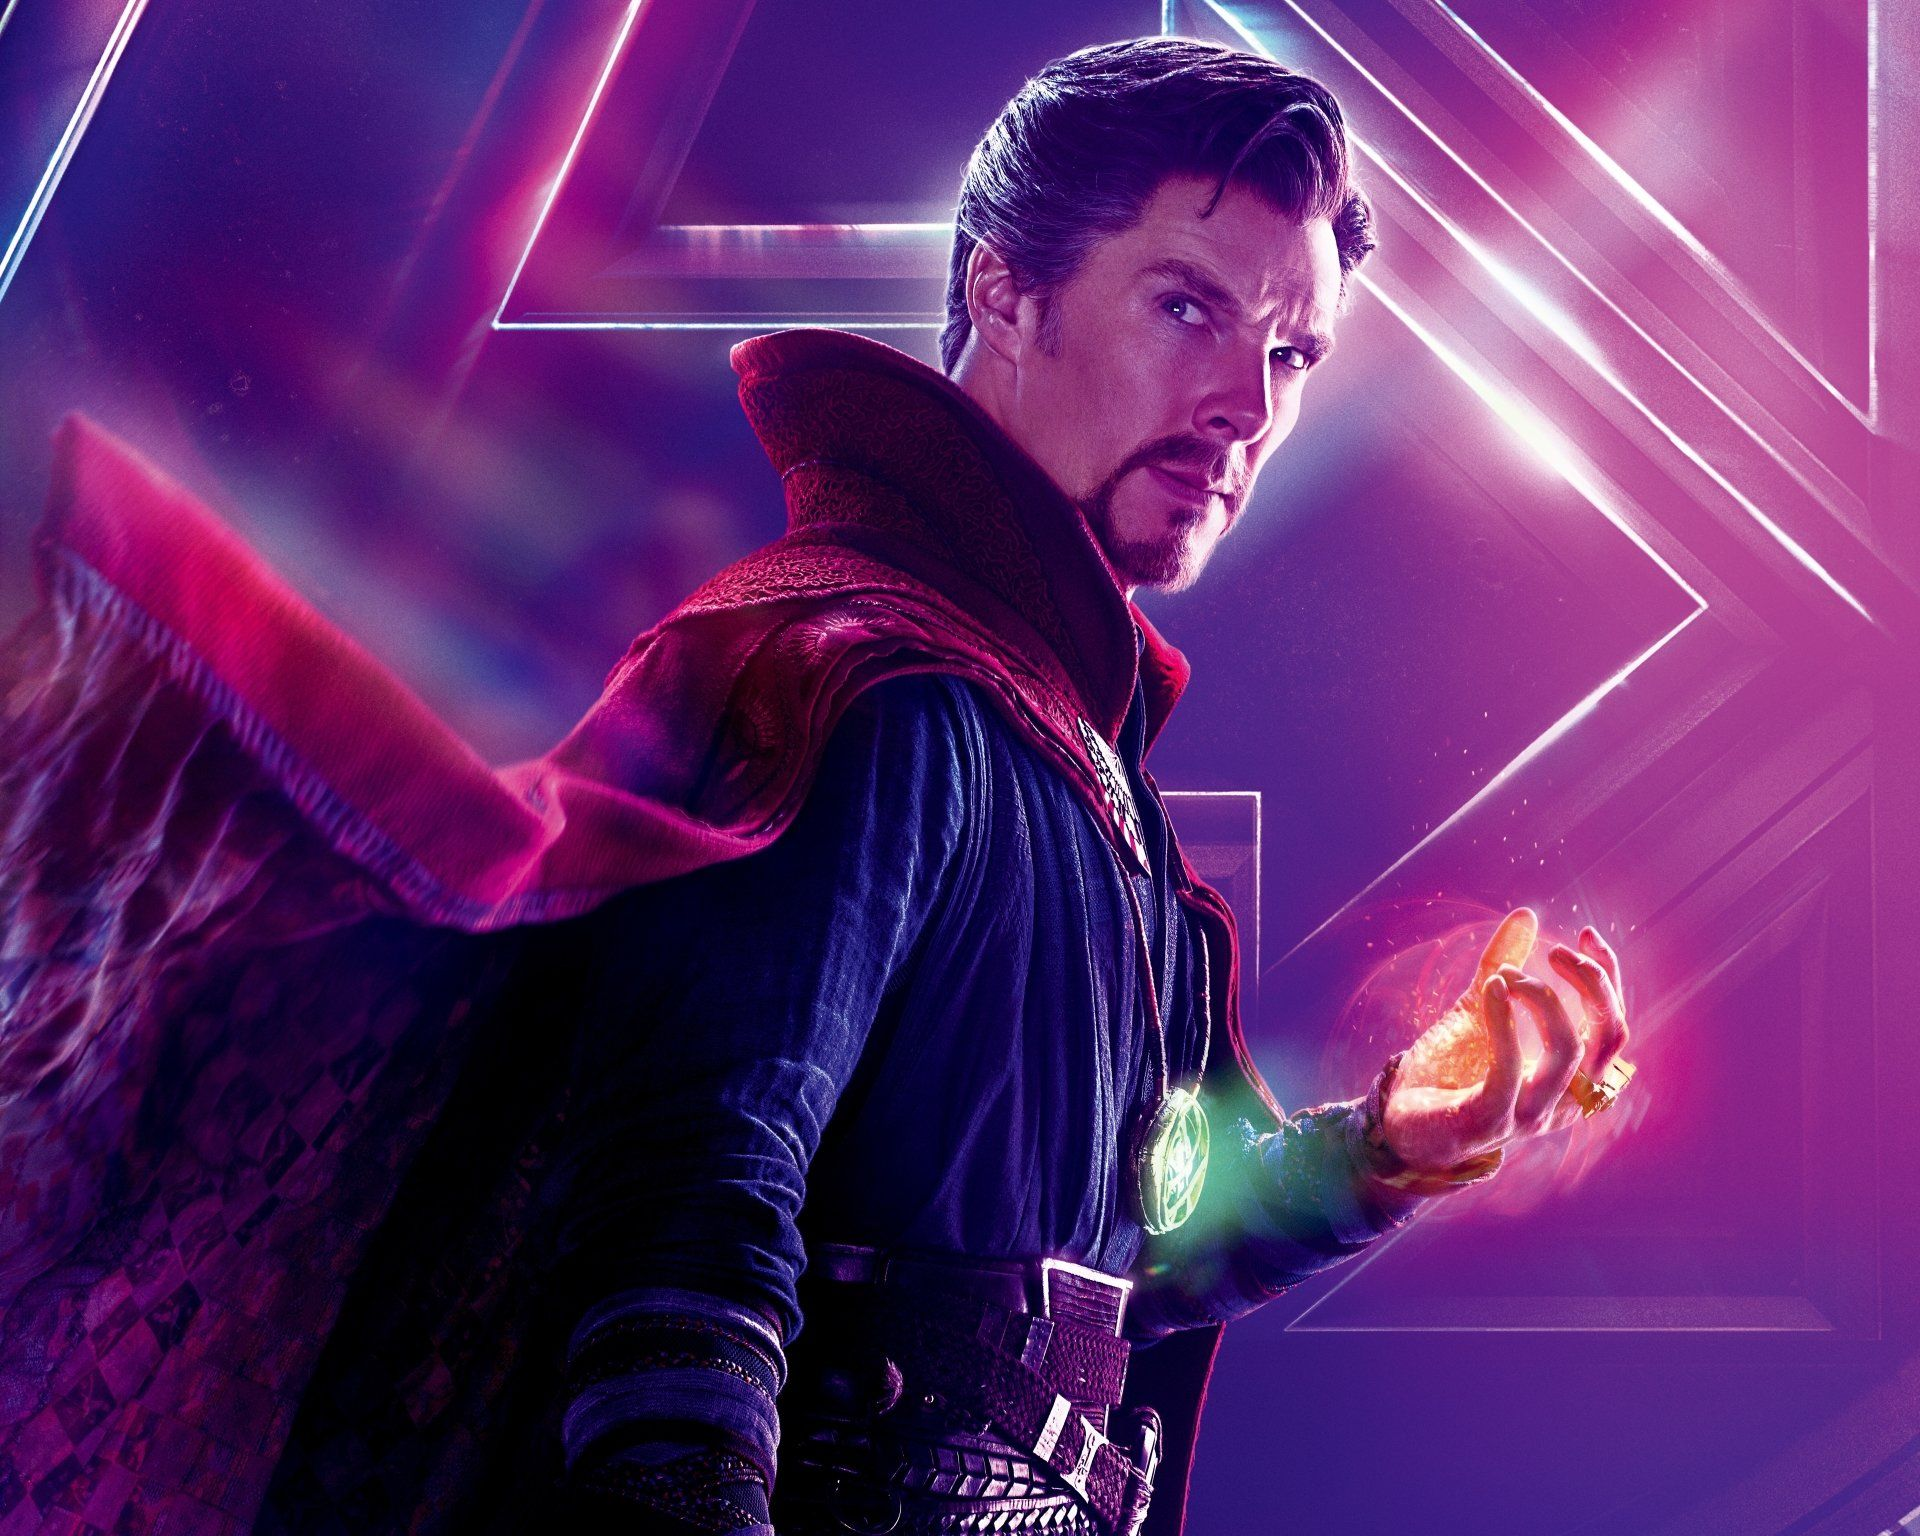 Dr Strange Avengers Infinity War 8k Ultra Hd Wallpaper And